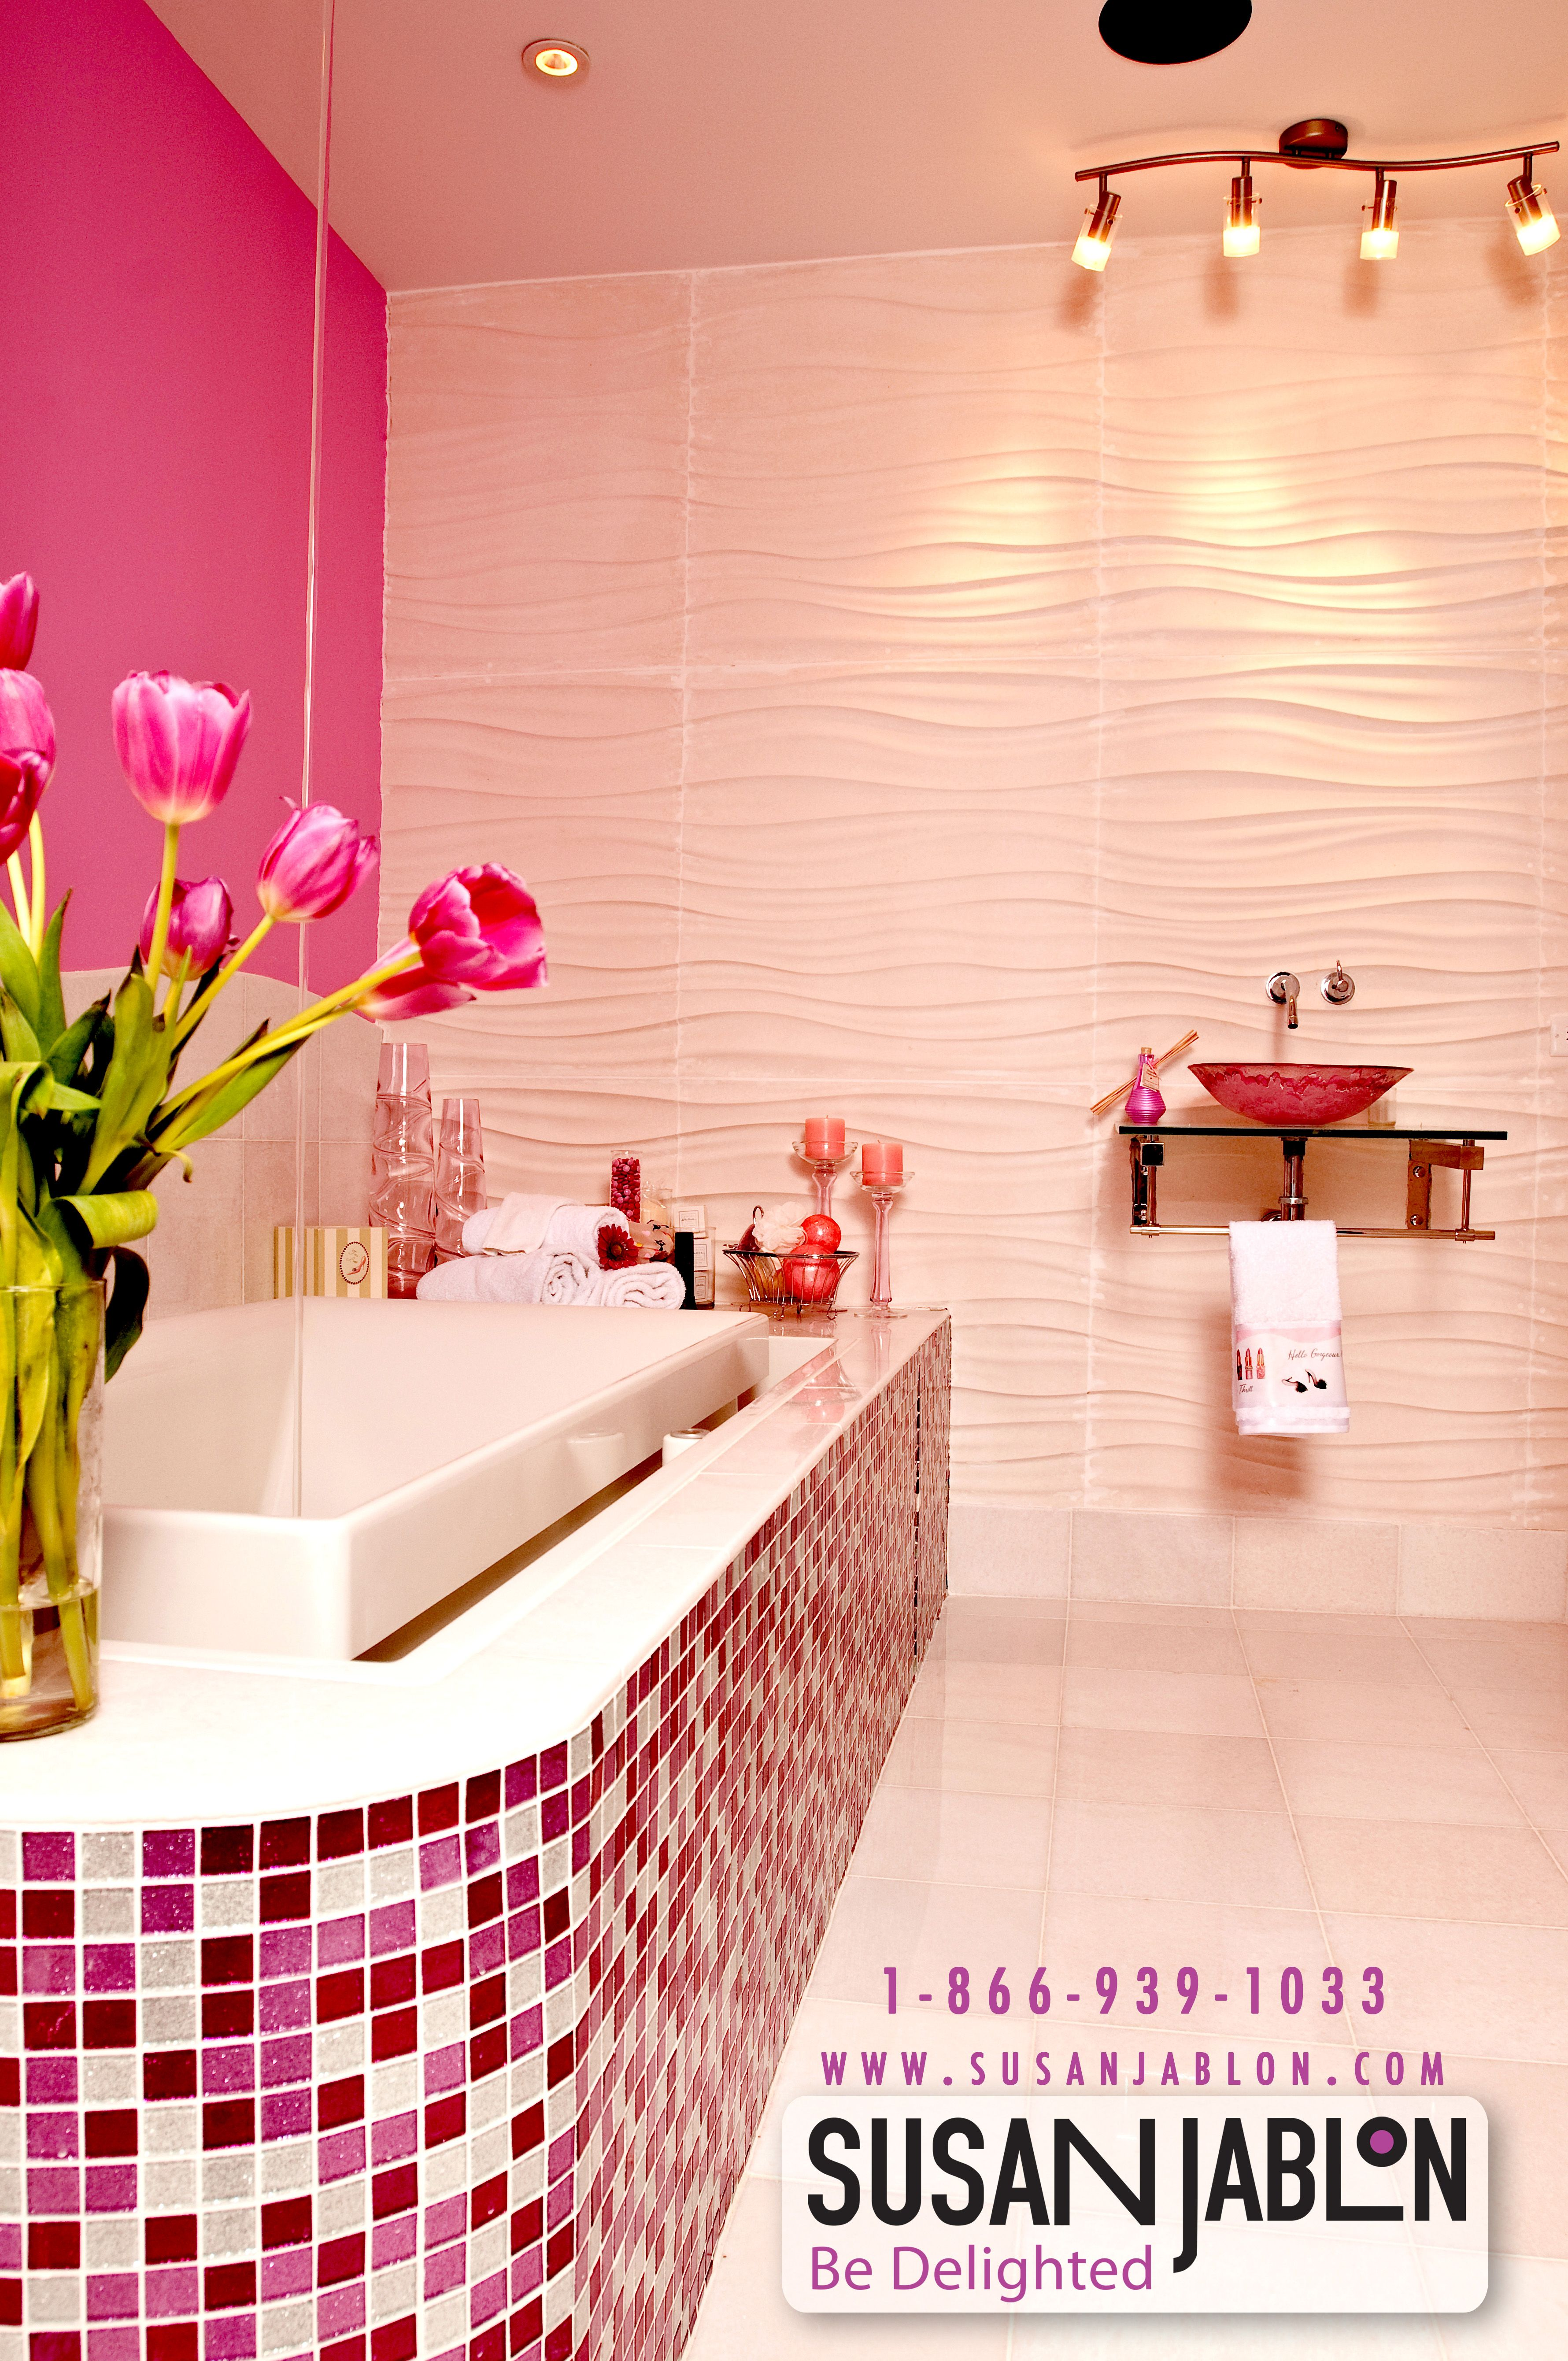 Visit our website for more tiles and mosaic images and prices ... www.susanjablon.com